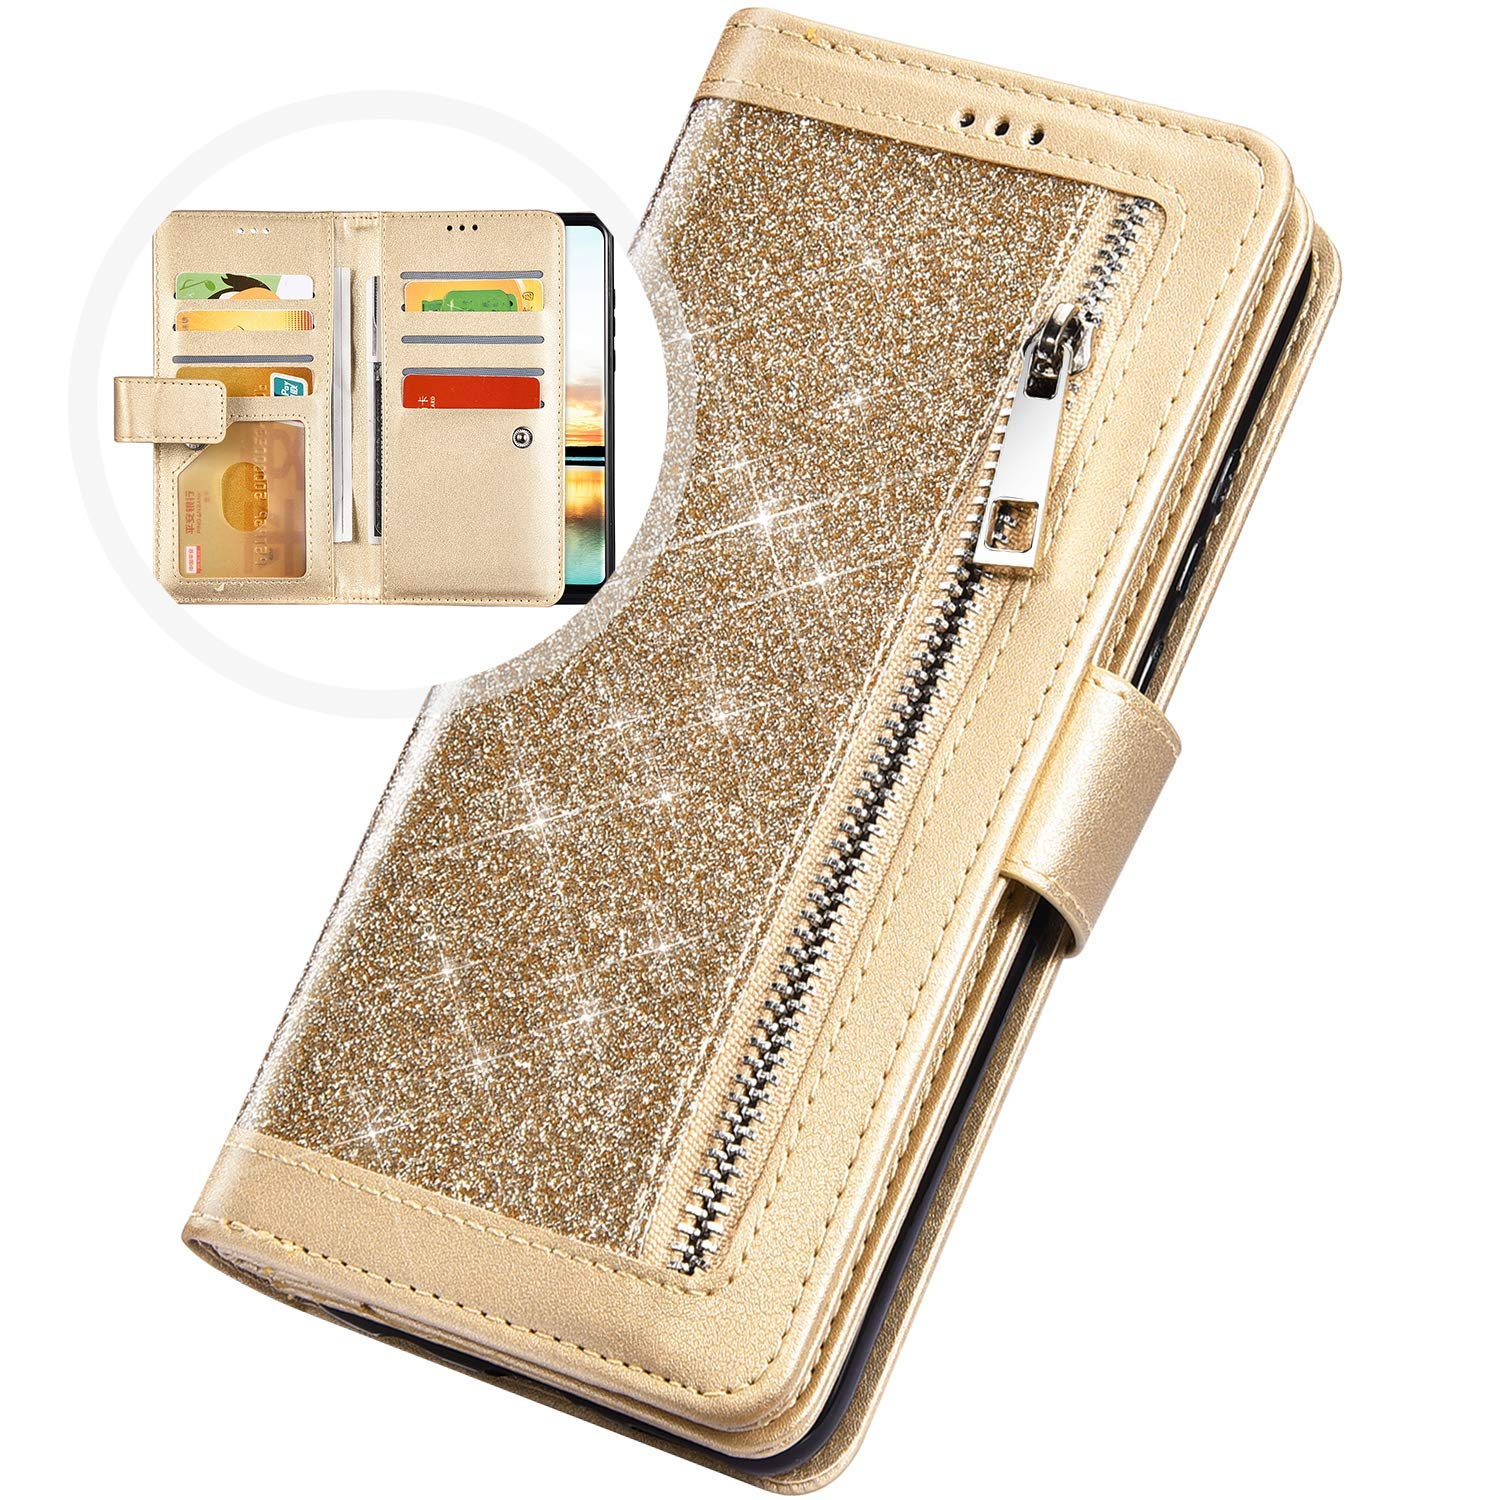 PHEZEN Case for Samsung Galaxy A20 / A30 Wallet Case,Sparkle Bling Glitter PU Leather Magnetic Flip Folio Protective Case Multi-Function 9 Credit Card Holders with Zipper Coins Purse Cover,Gold by PHEZEN